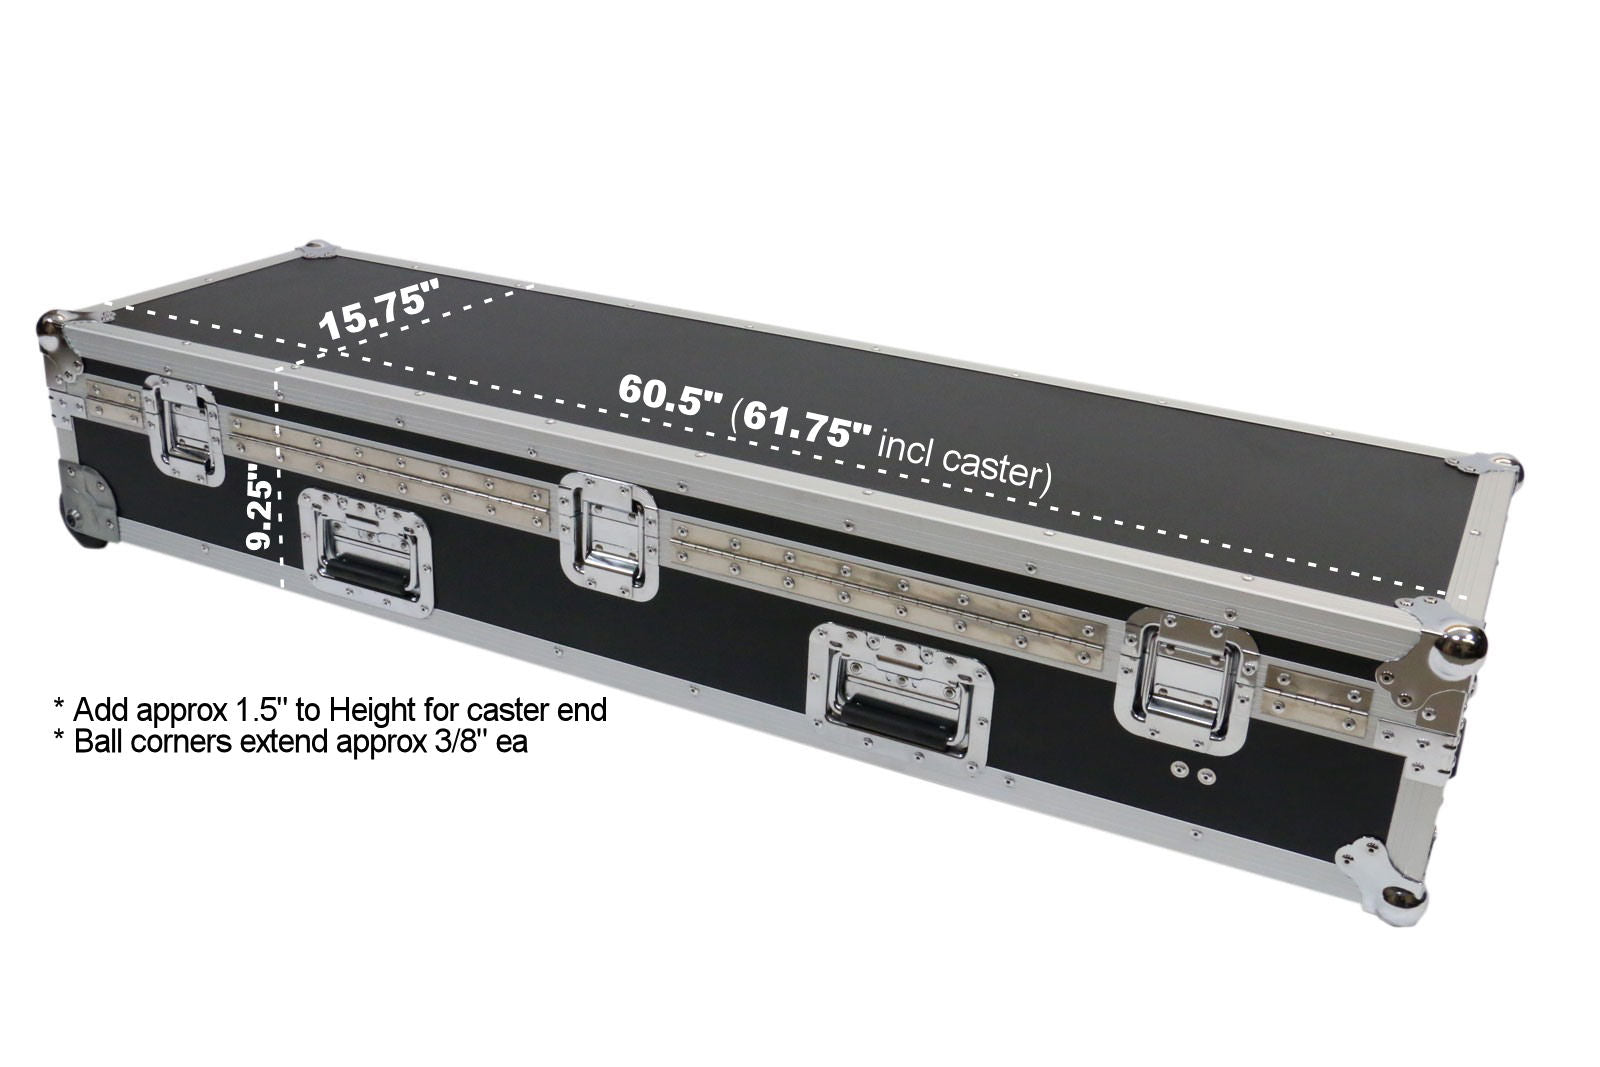 XS8 ATA-XF8-WC OSP Cases ES8 ATA Road Case Keyboard Case for ...